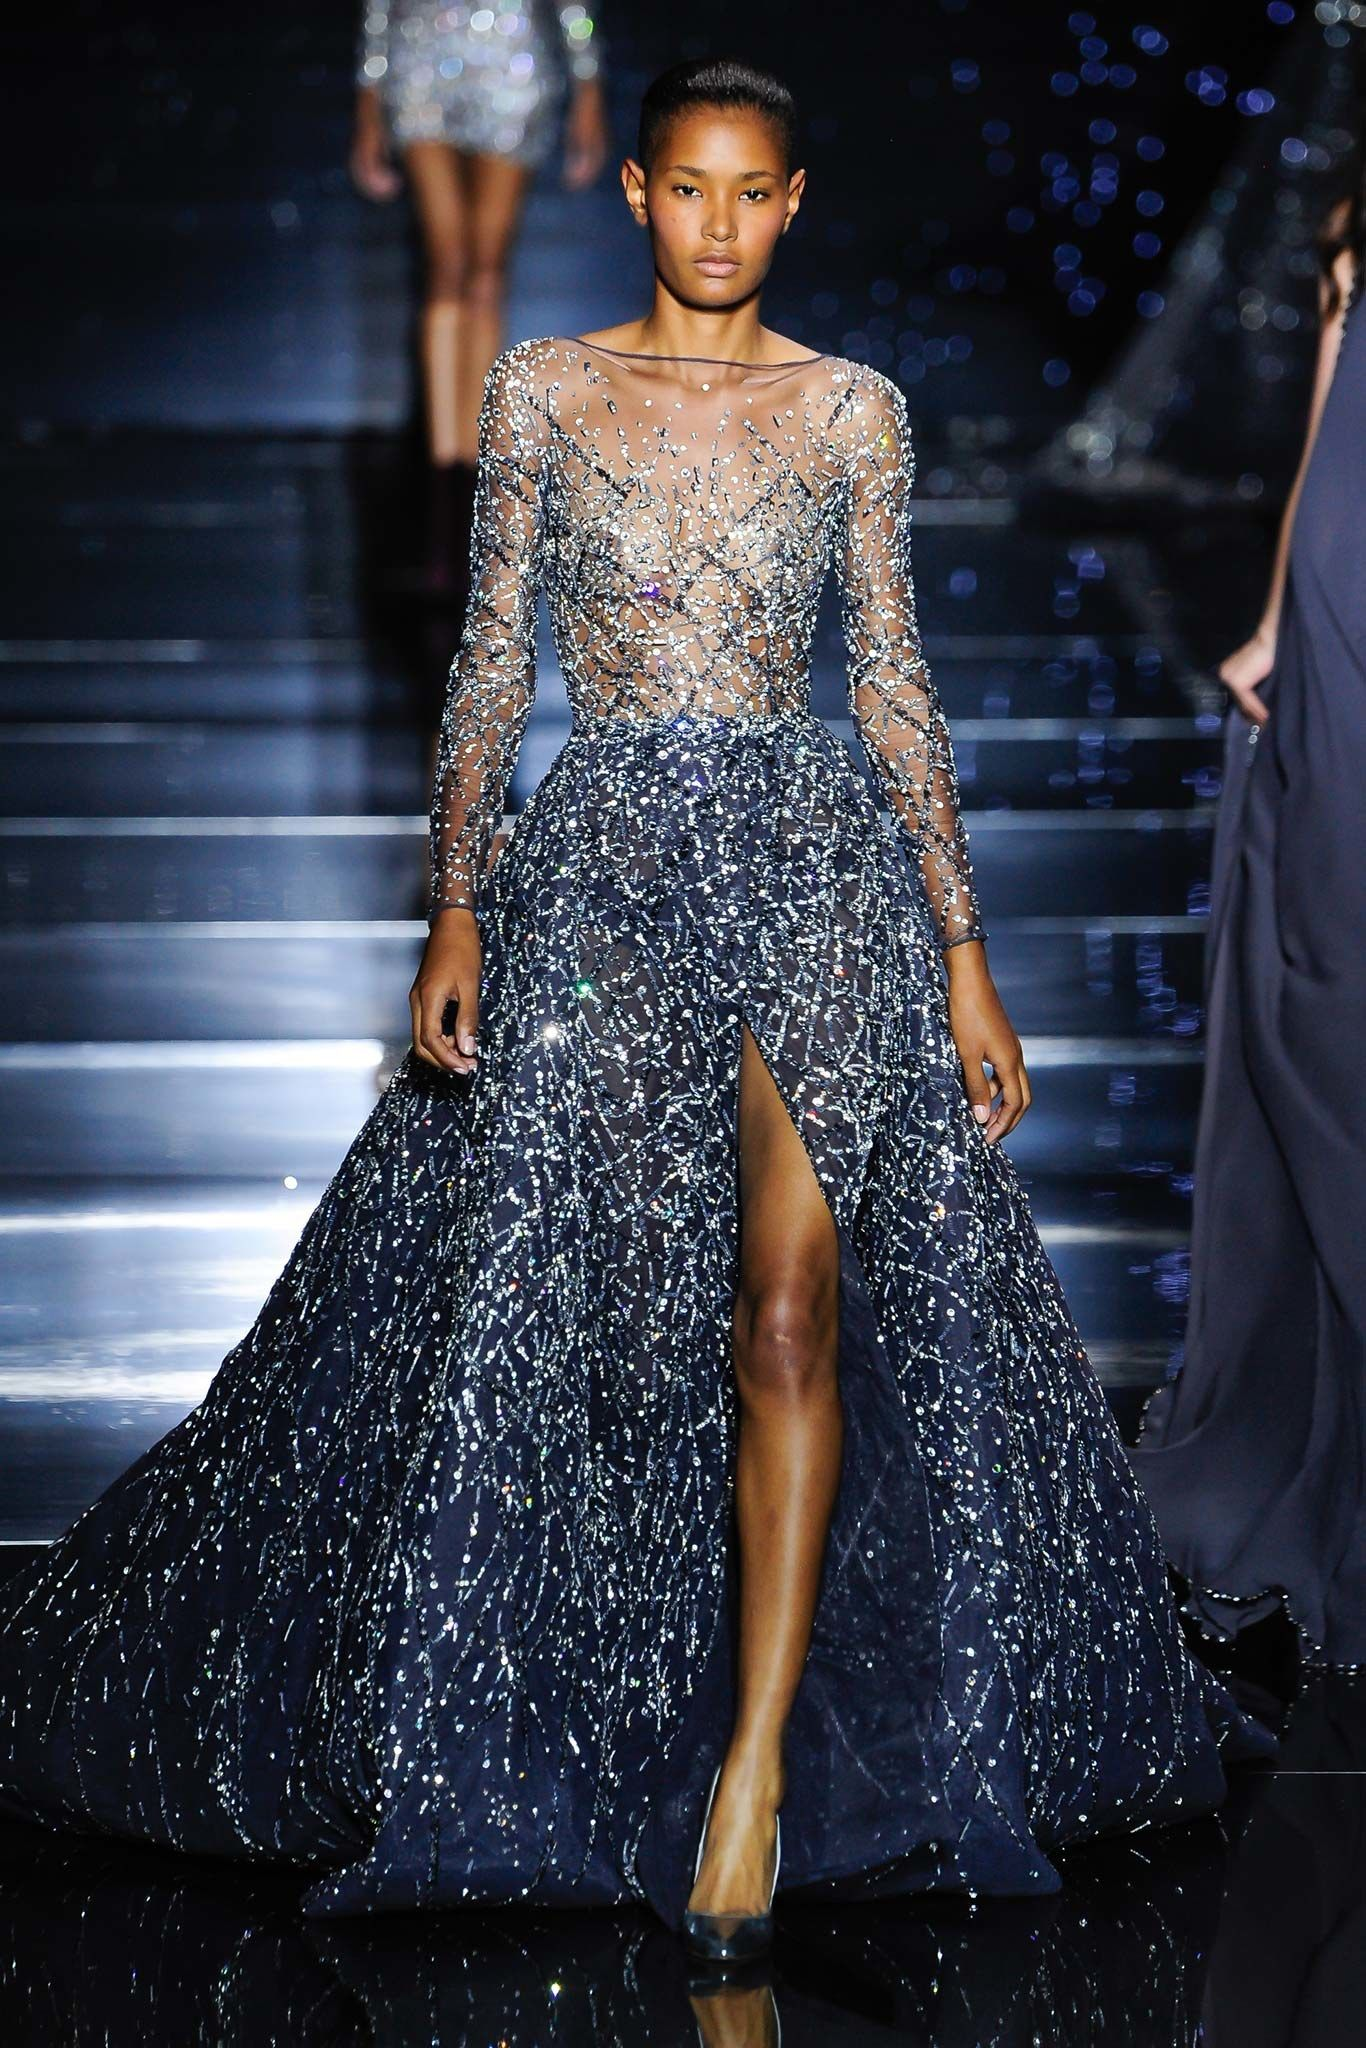 Zuhair Murad | Fall/Winter 2015 Couture Collection | Modeled by Ysaunny Brito | July 9, 2015; Paris, France